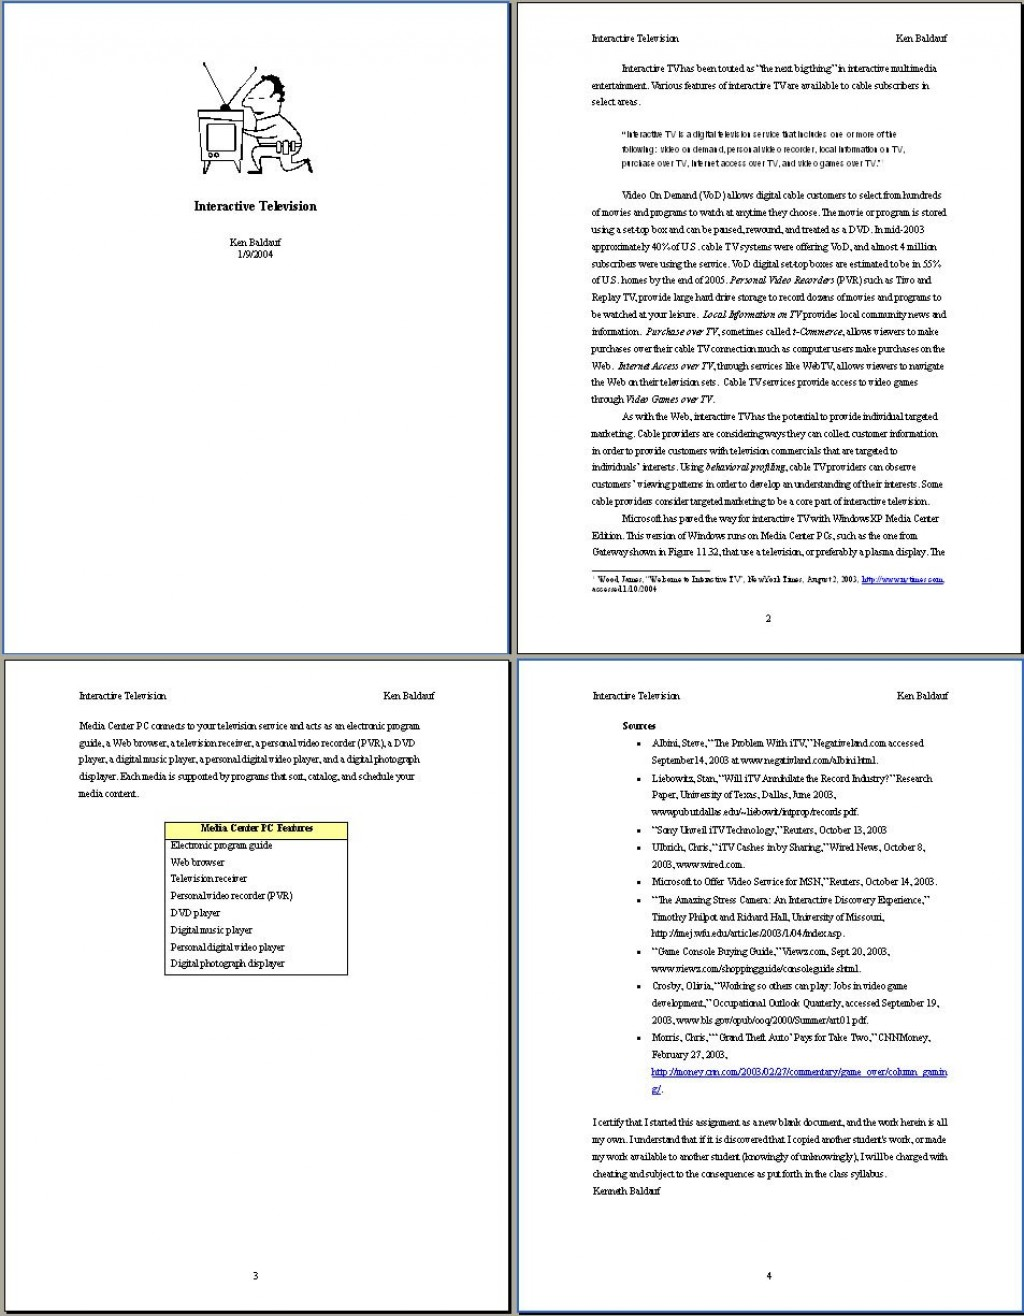 009 Introduction Of Research Paper Apa Best A For Sample - Style Large